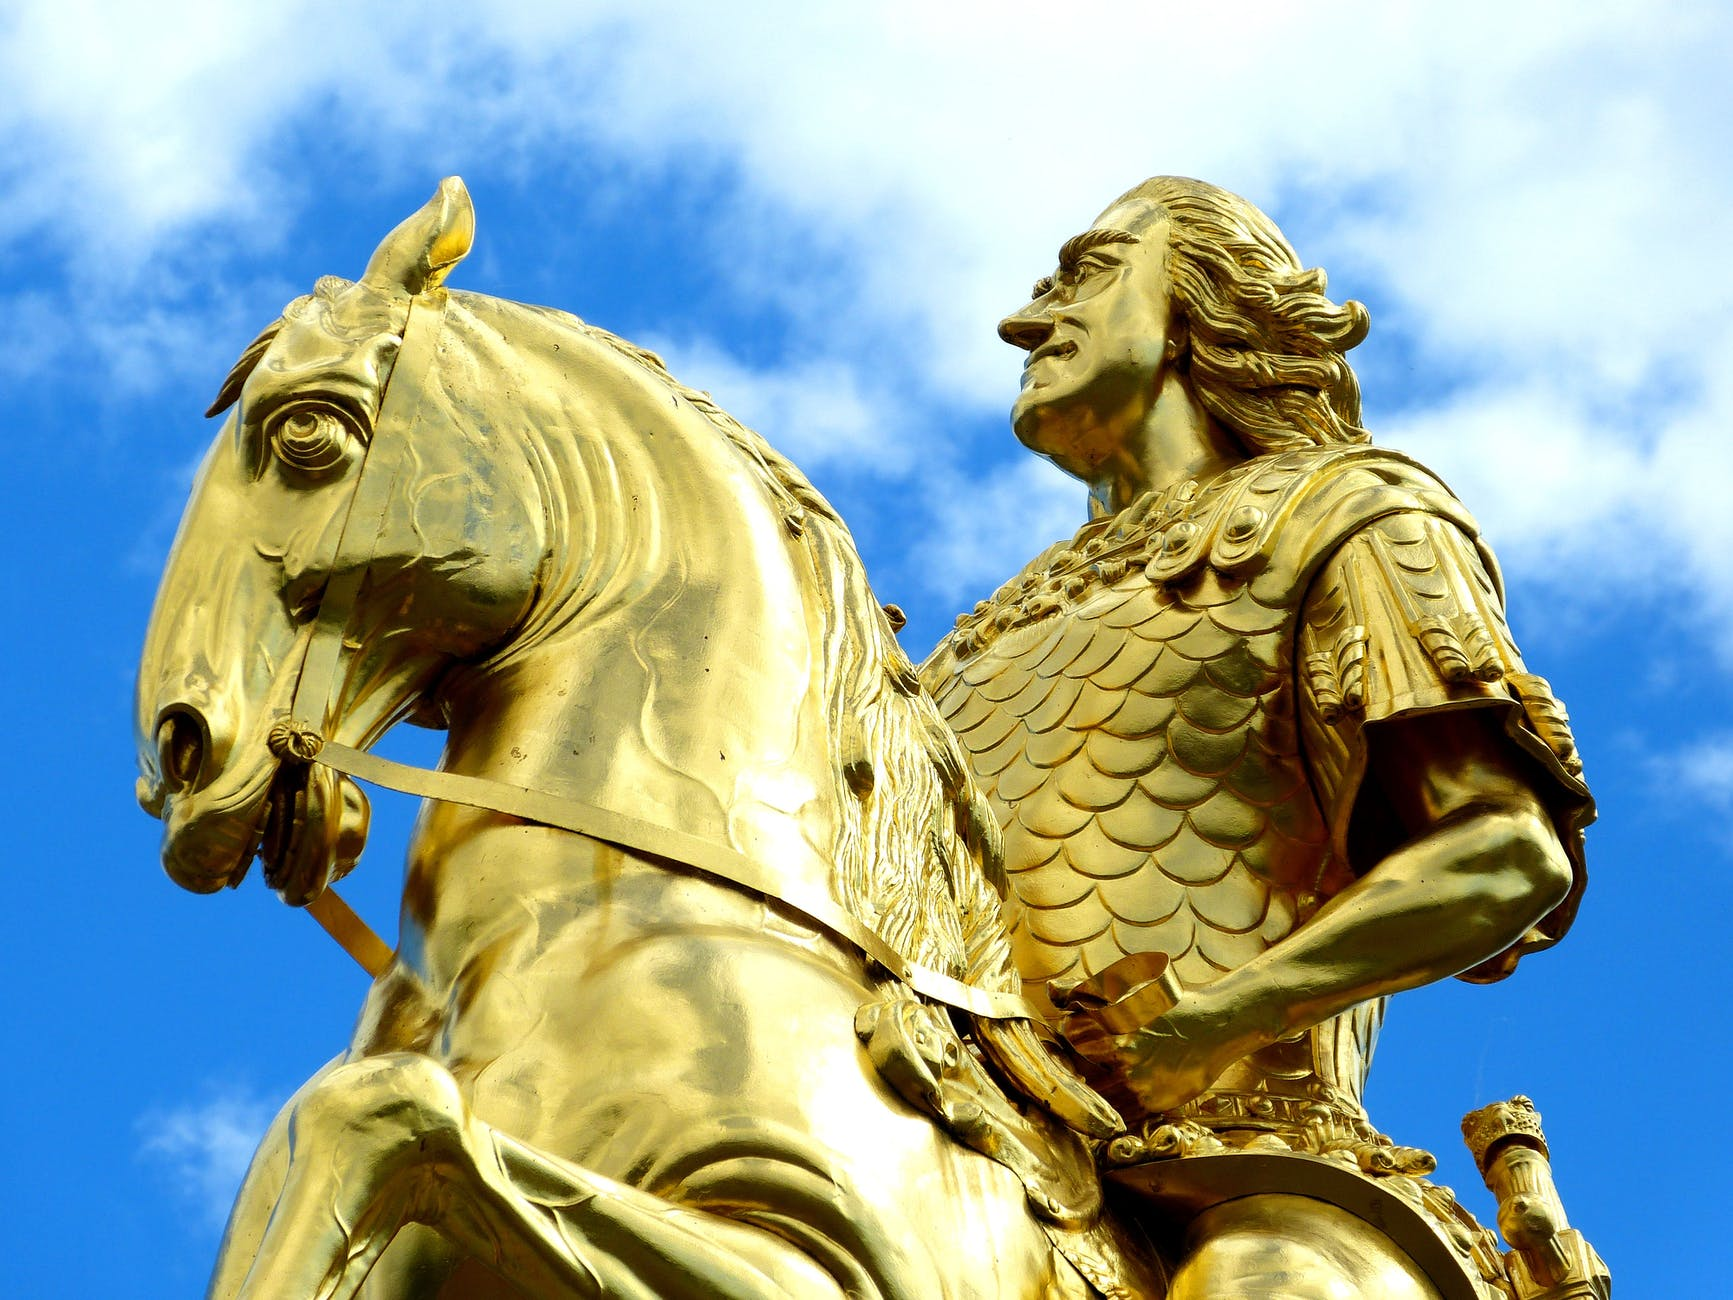 golden statue under blue skies during day time